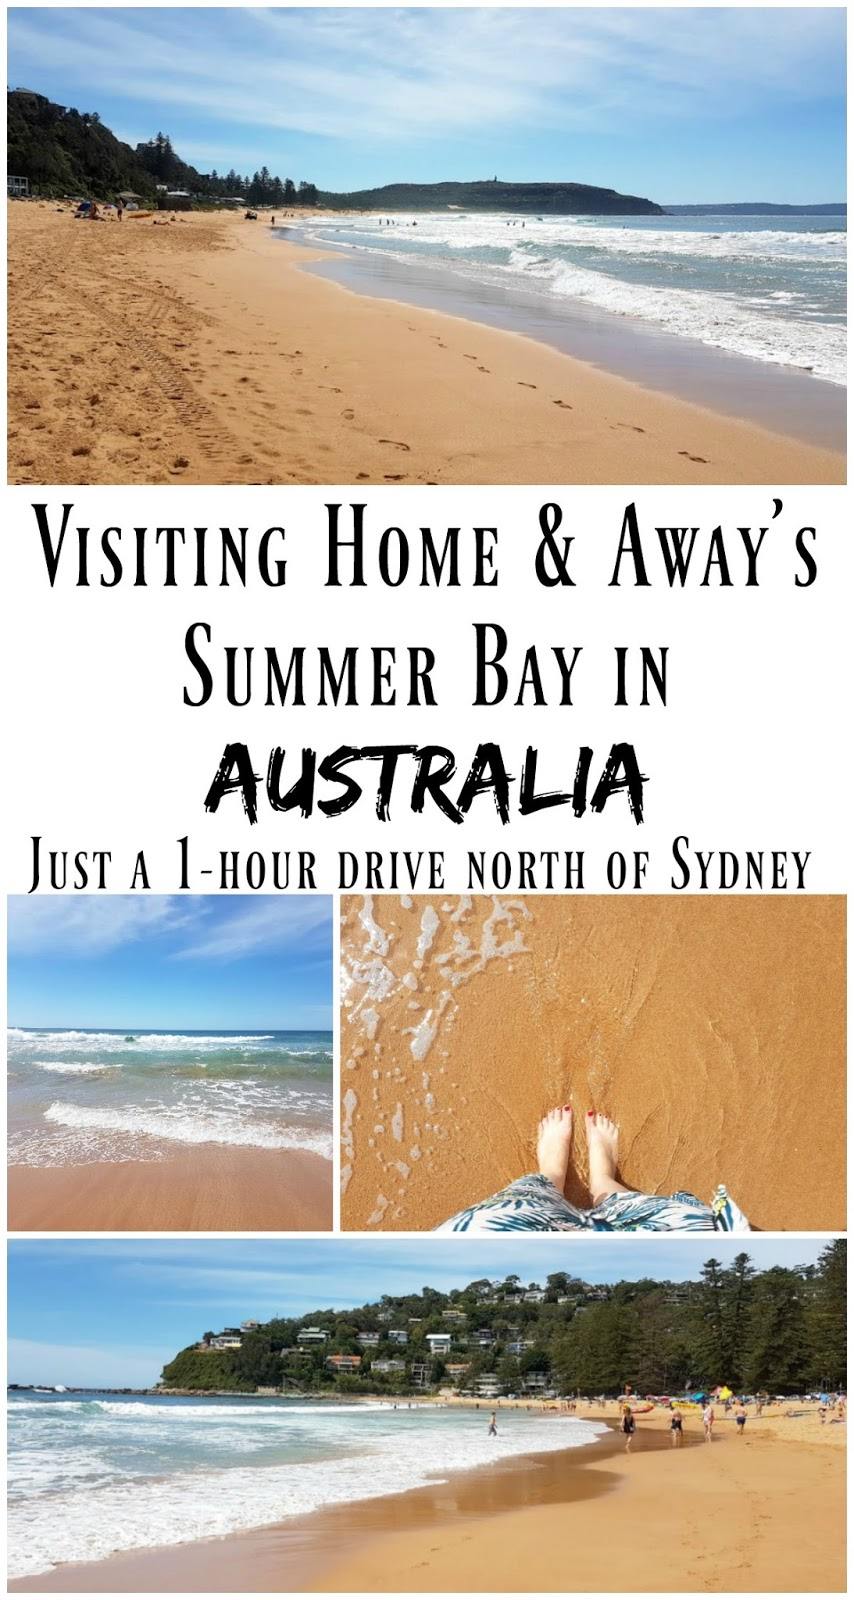 PIN FOR LATER: Palm beach is the real life filming location of the famous Australian TV show, Home and Away. In Home and Away the suburb and beach is called 'Summer Bay'. The beach is just a 1 hour drive north of Sydney, and is such a cute and relaxed place to visit for the day!